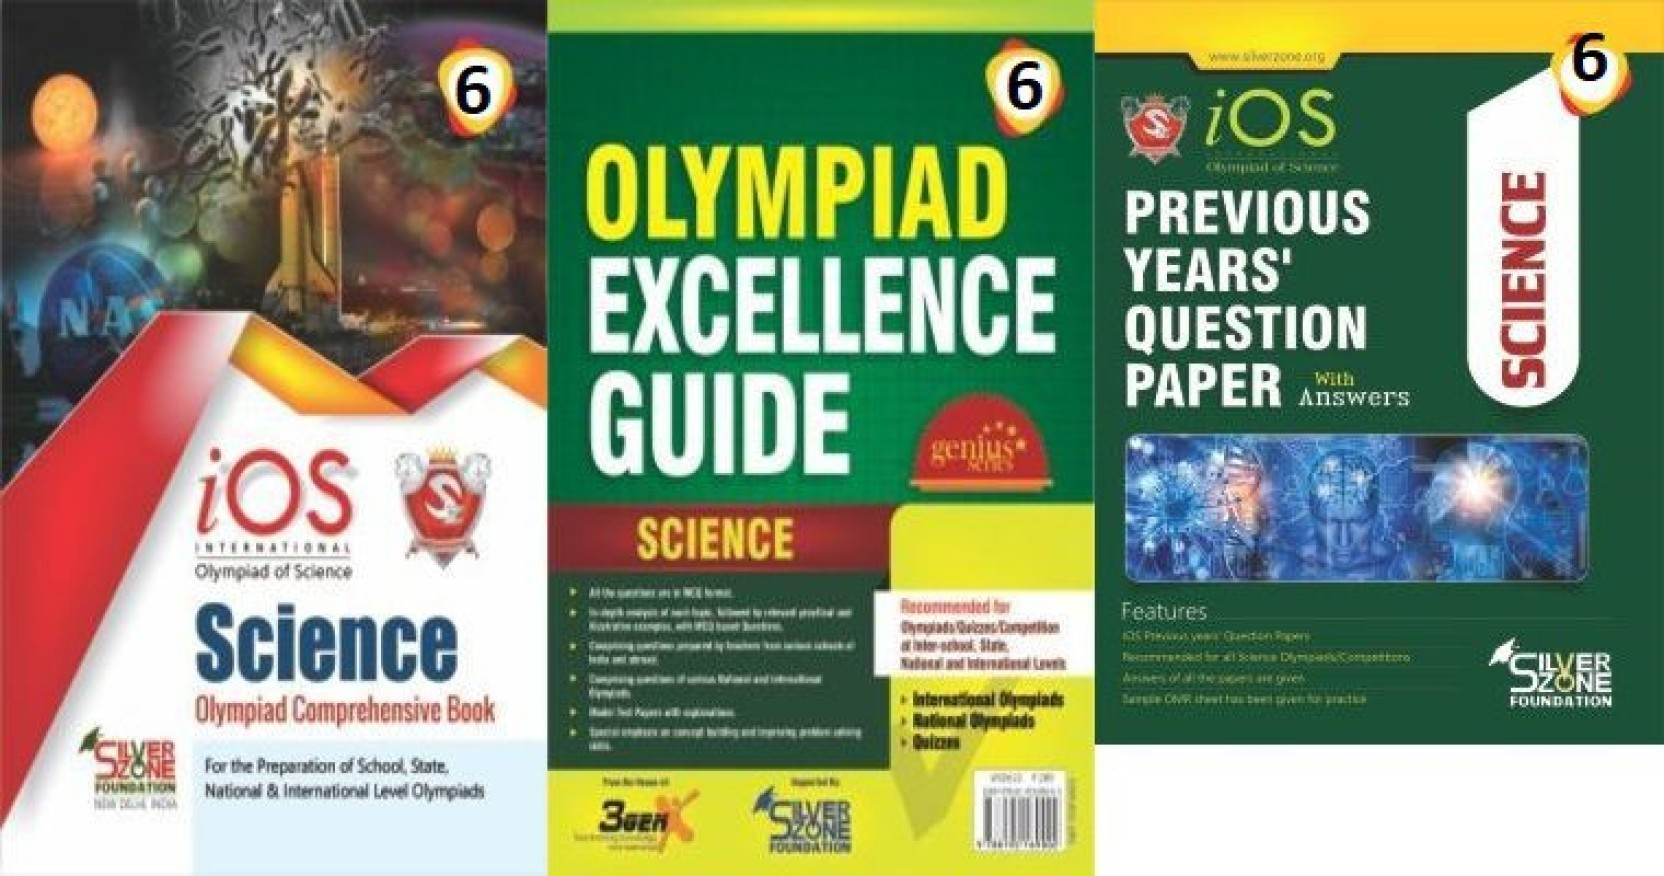 Silver Zone Olympiad Books Science IOS Comprihenshive Book + Guide